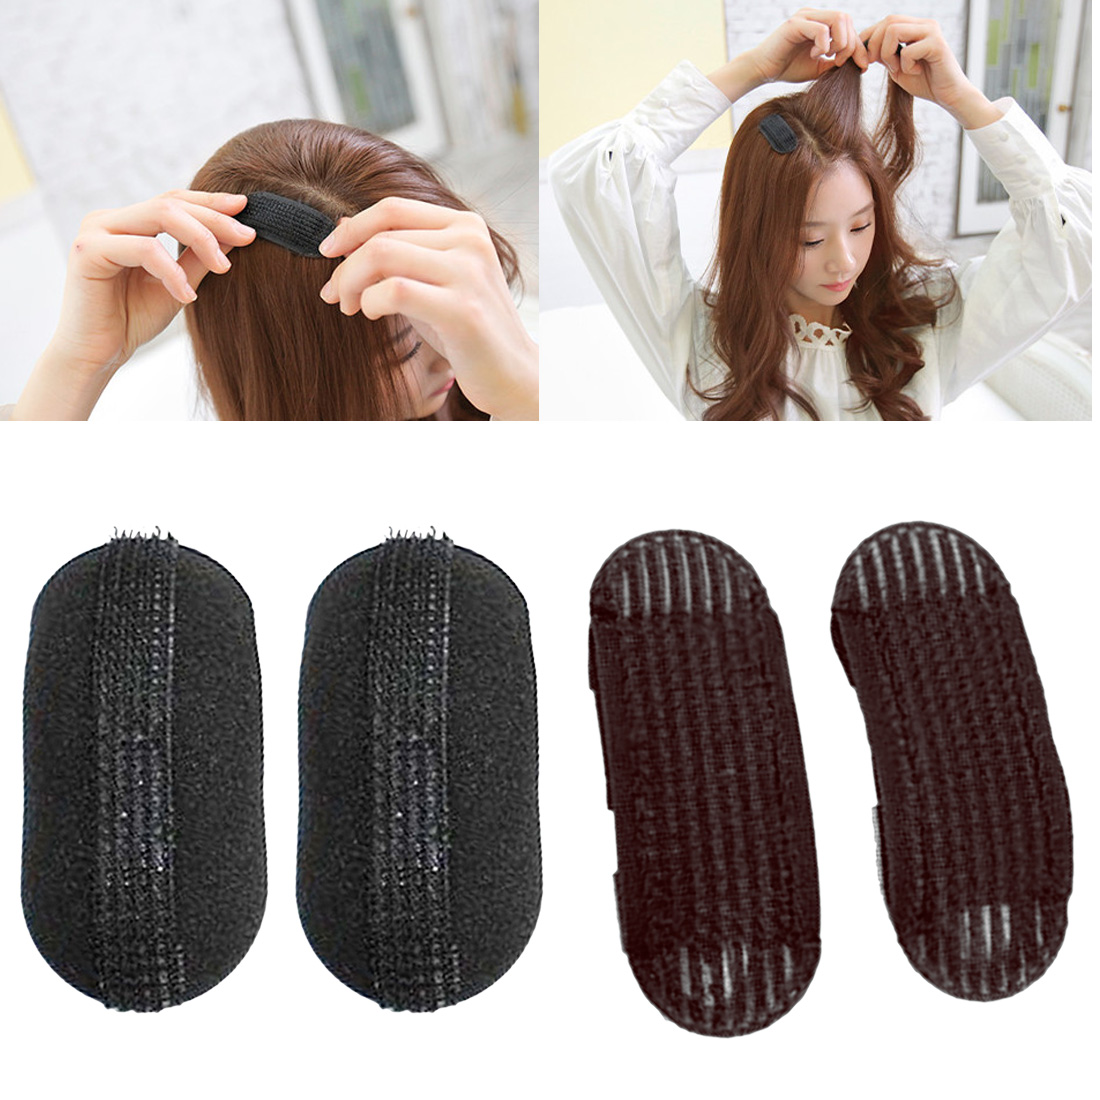 2PCS Princess Design Hair Bump It Up Volume Hair Base Barrettes Inserts Beehive Sponge Hair Bun Maker Pad Styling Accessories